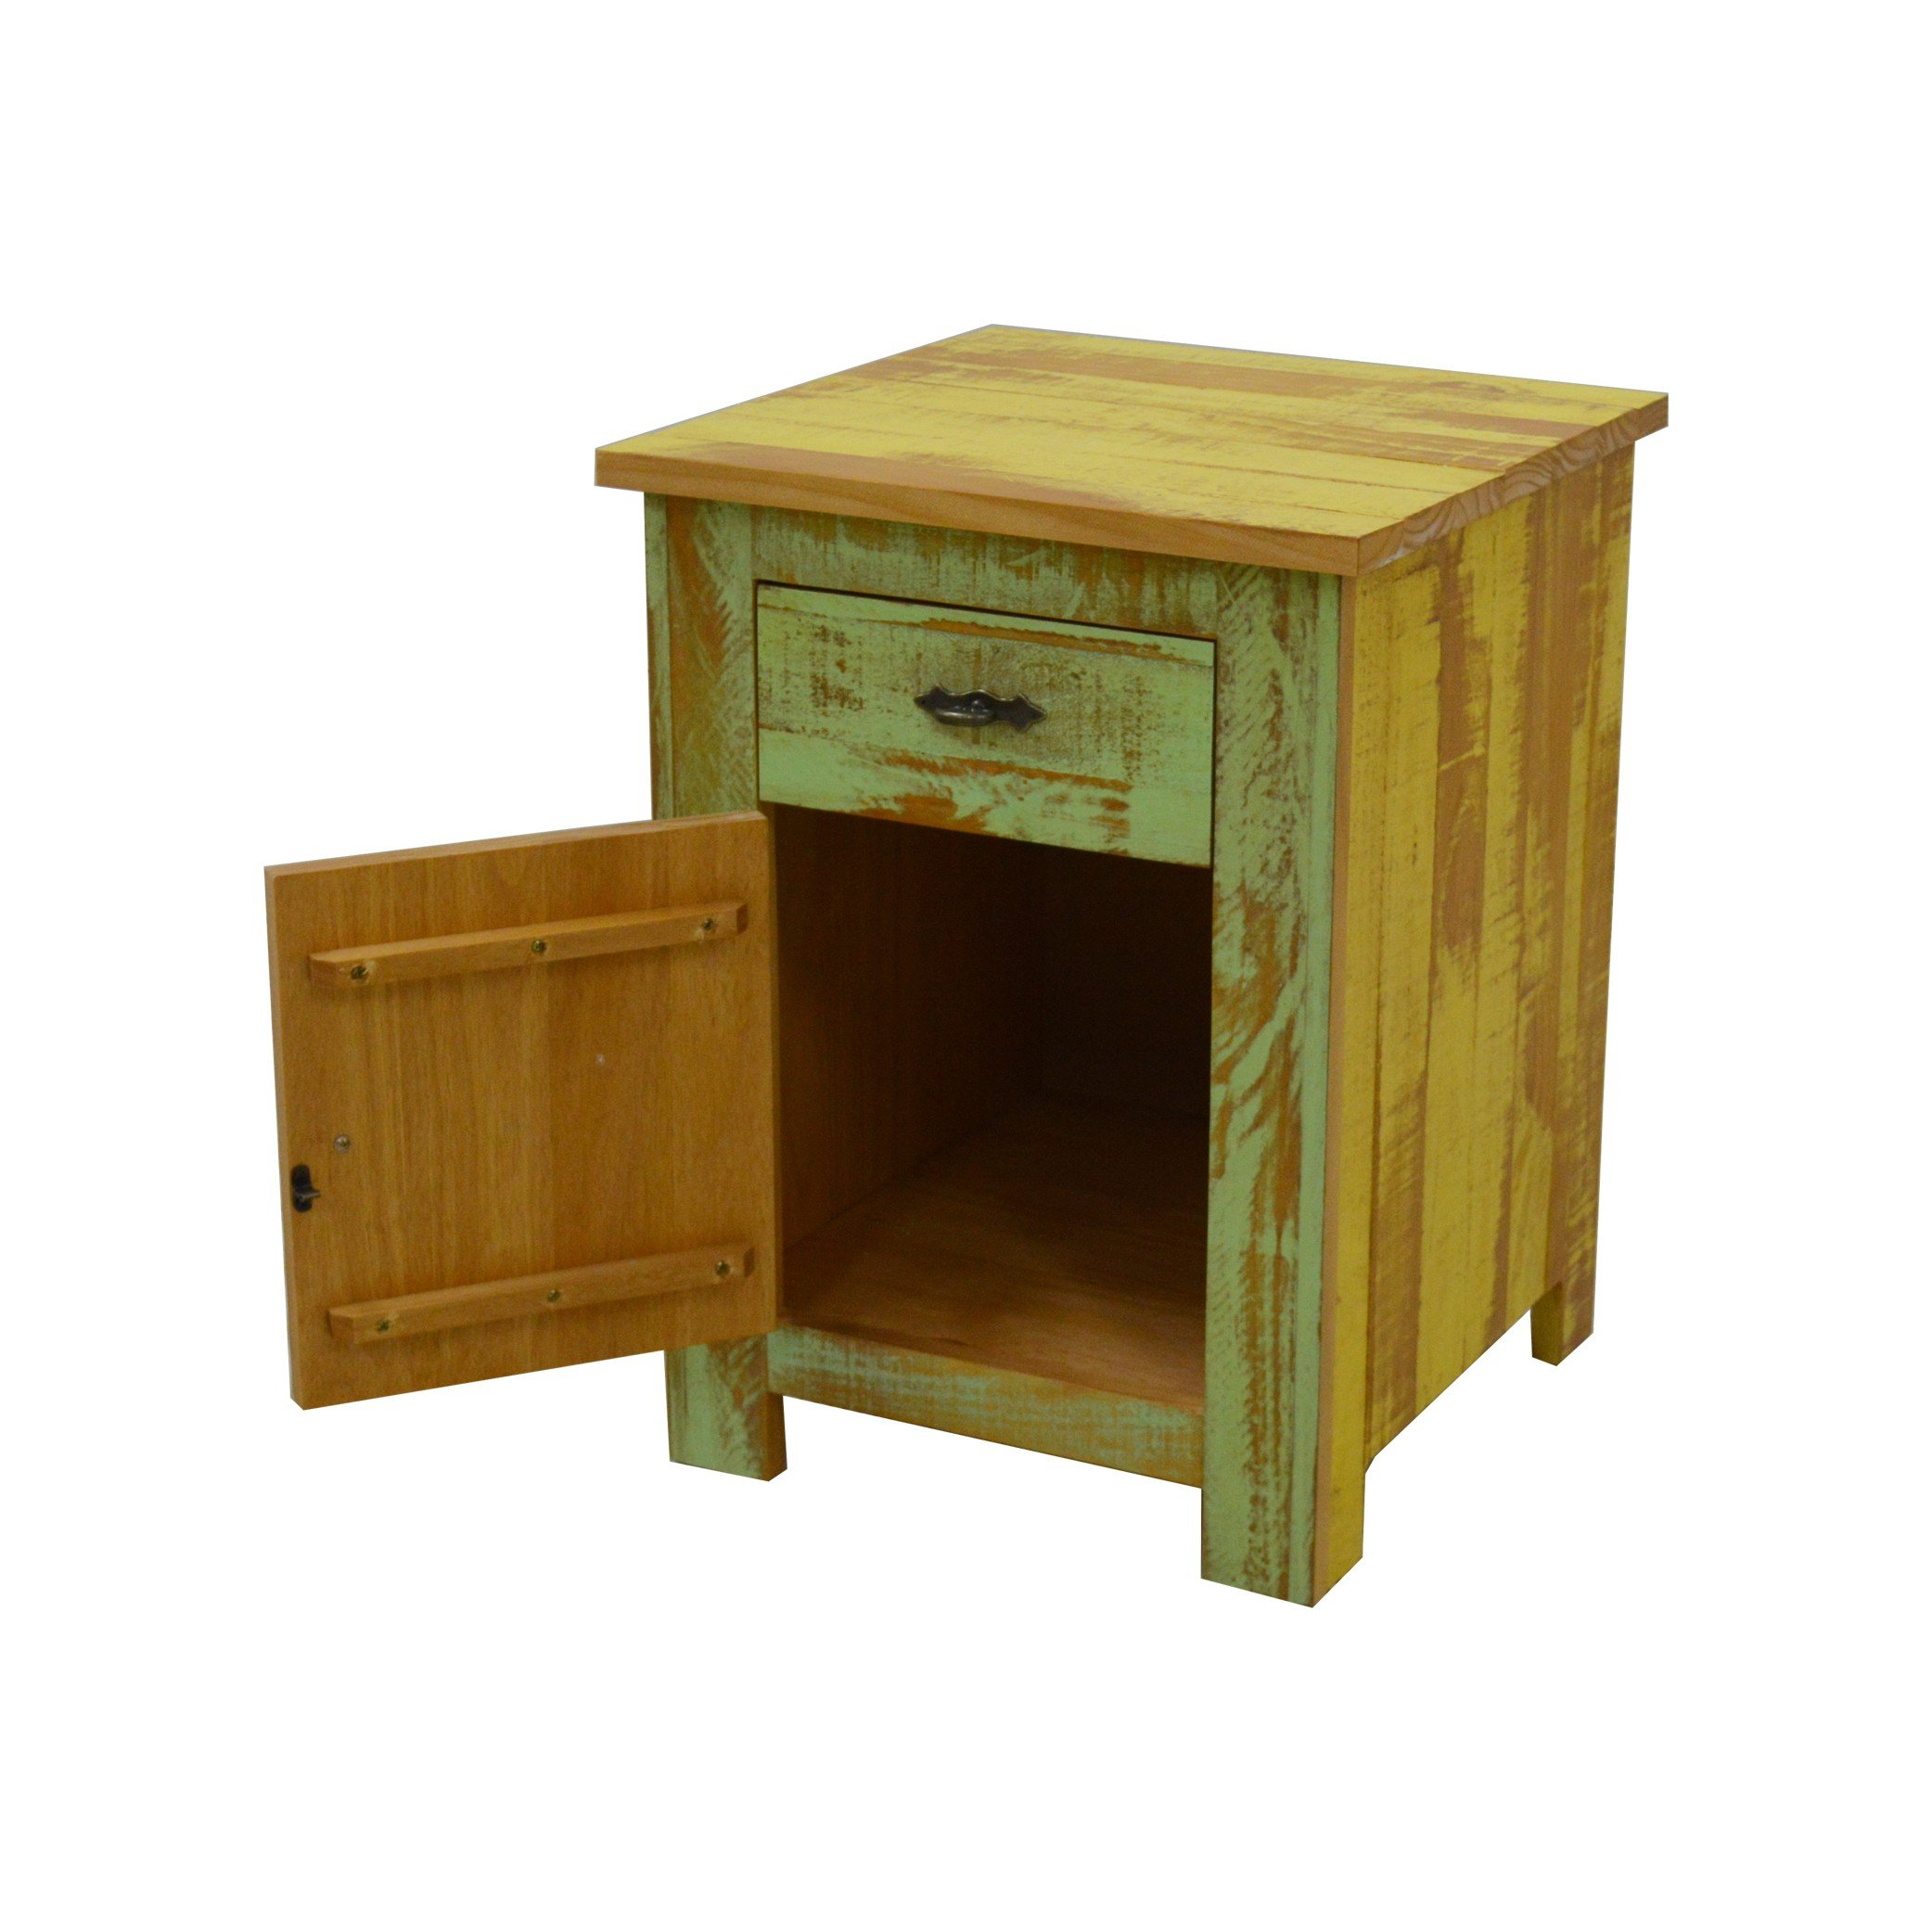 Reclaimed Accent Cabinet Solid Wood Distressed Color by The Beach House Design (Image #5)